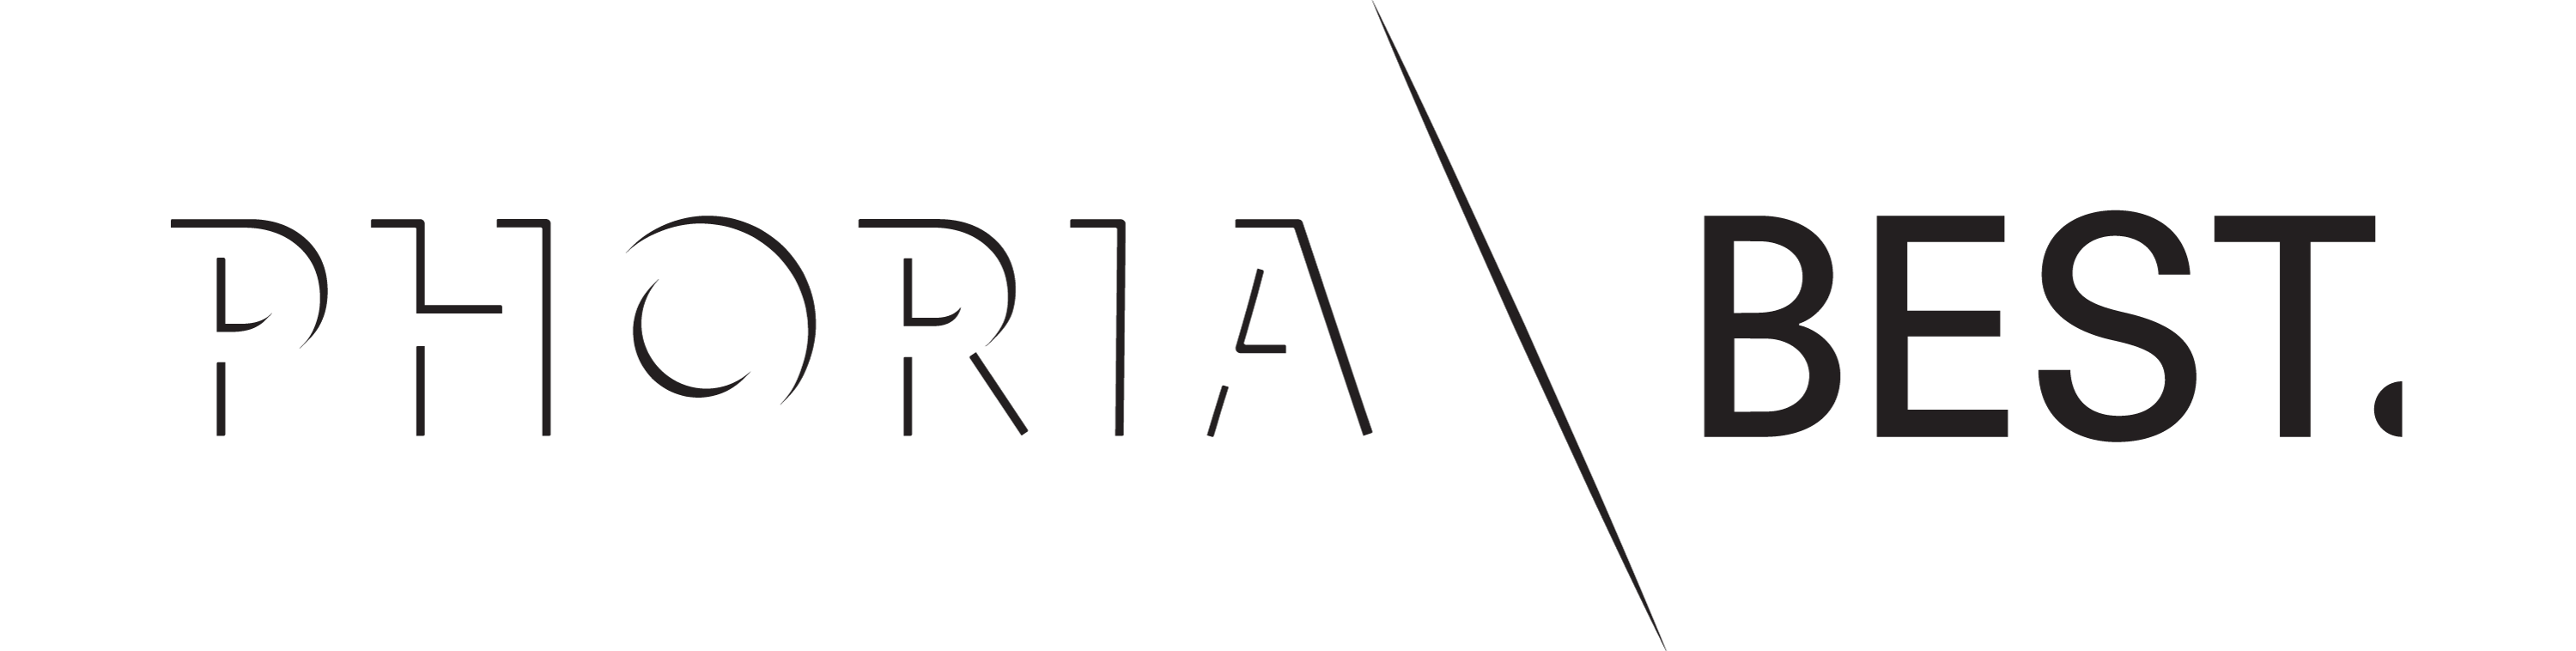 Agencies BEST and PHORIA enter a joint venture